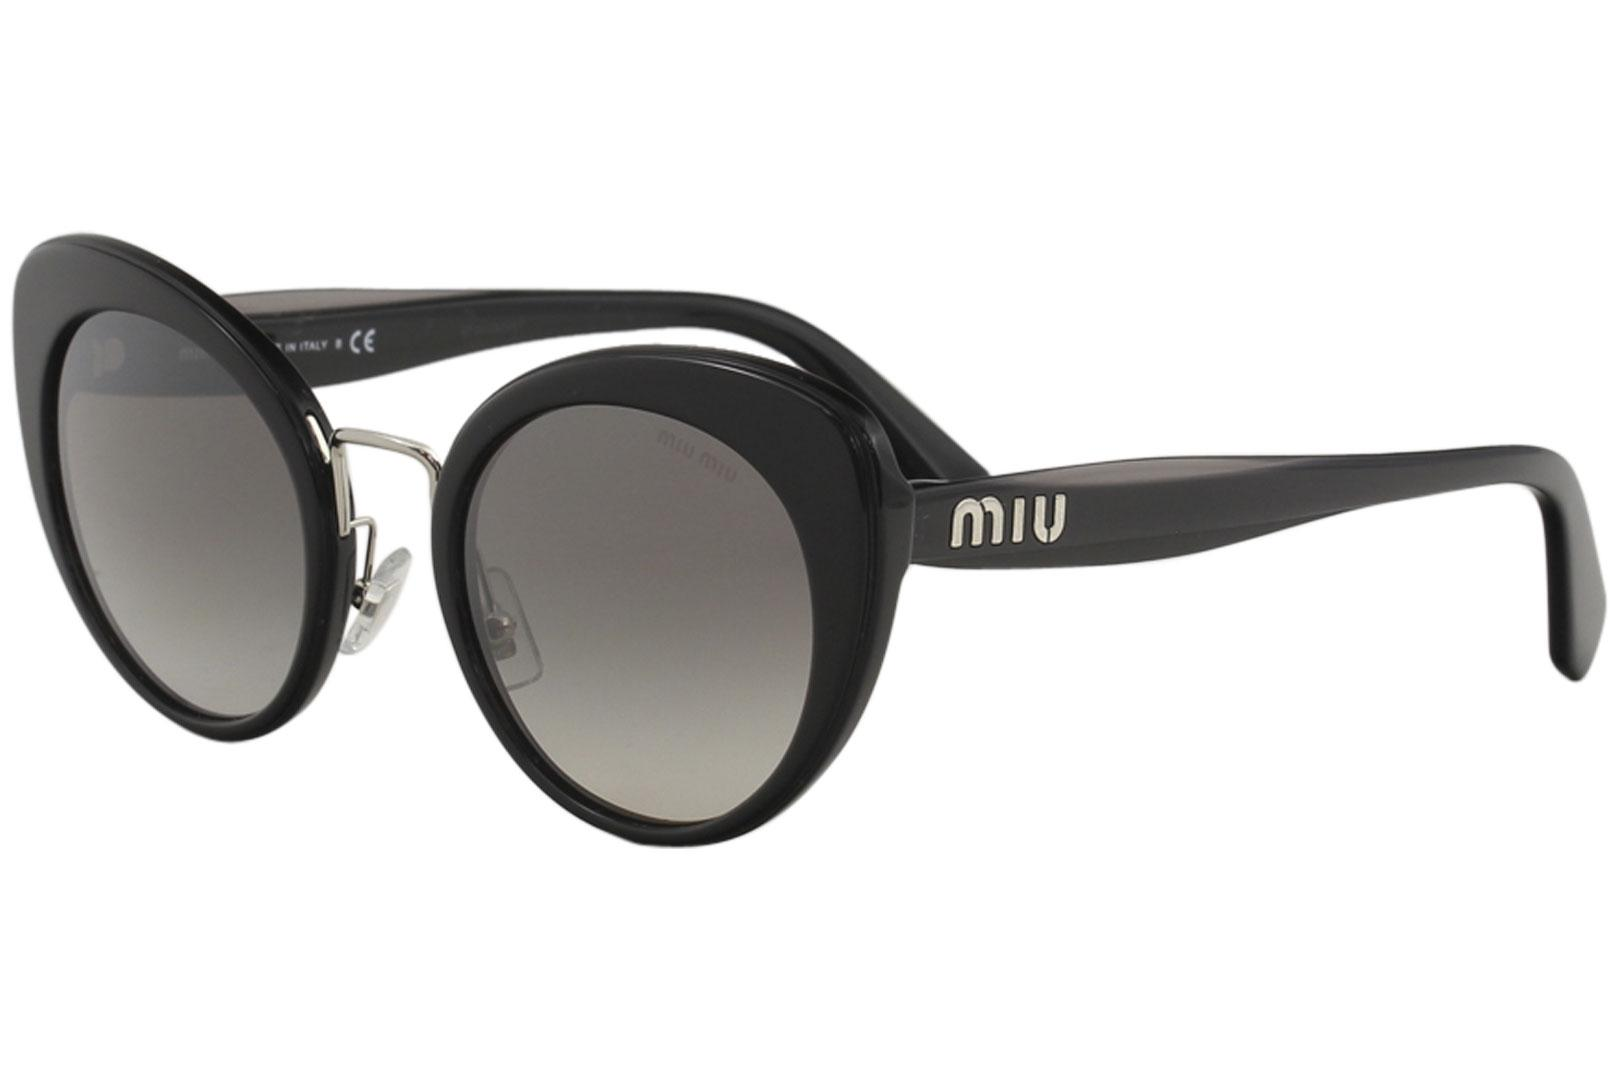 0402802ba916 Miu Miu Women s SMU06T SMU 06T Fashion Cat Eye Sunglasses